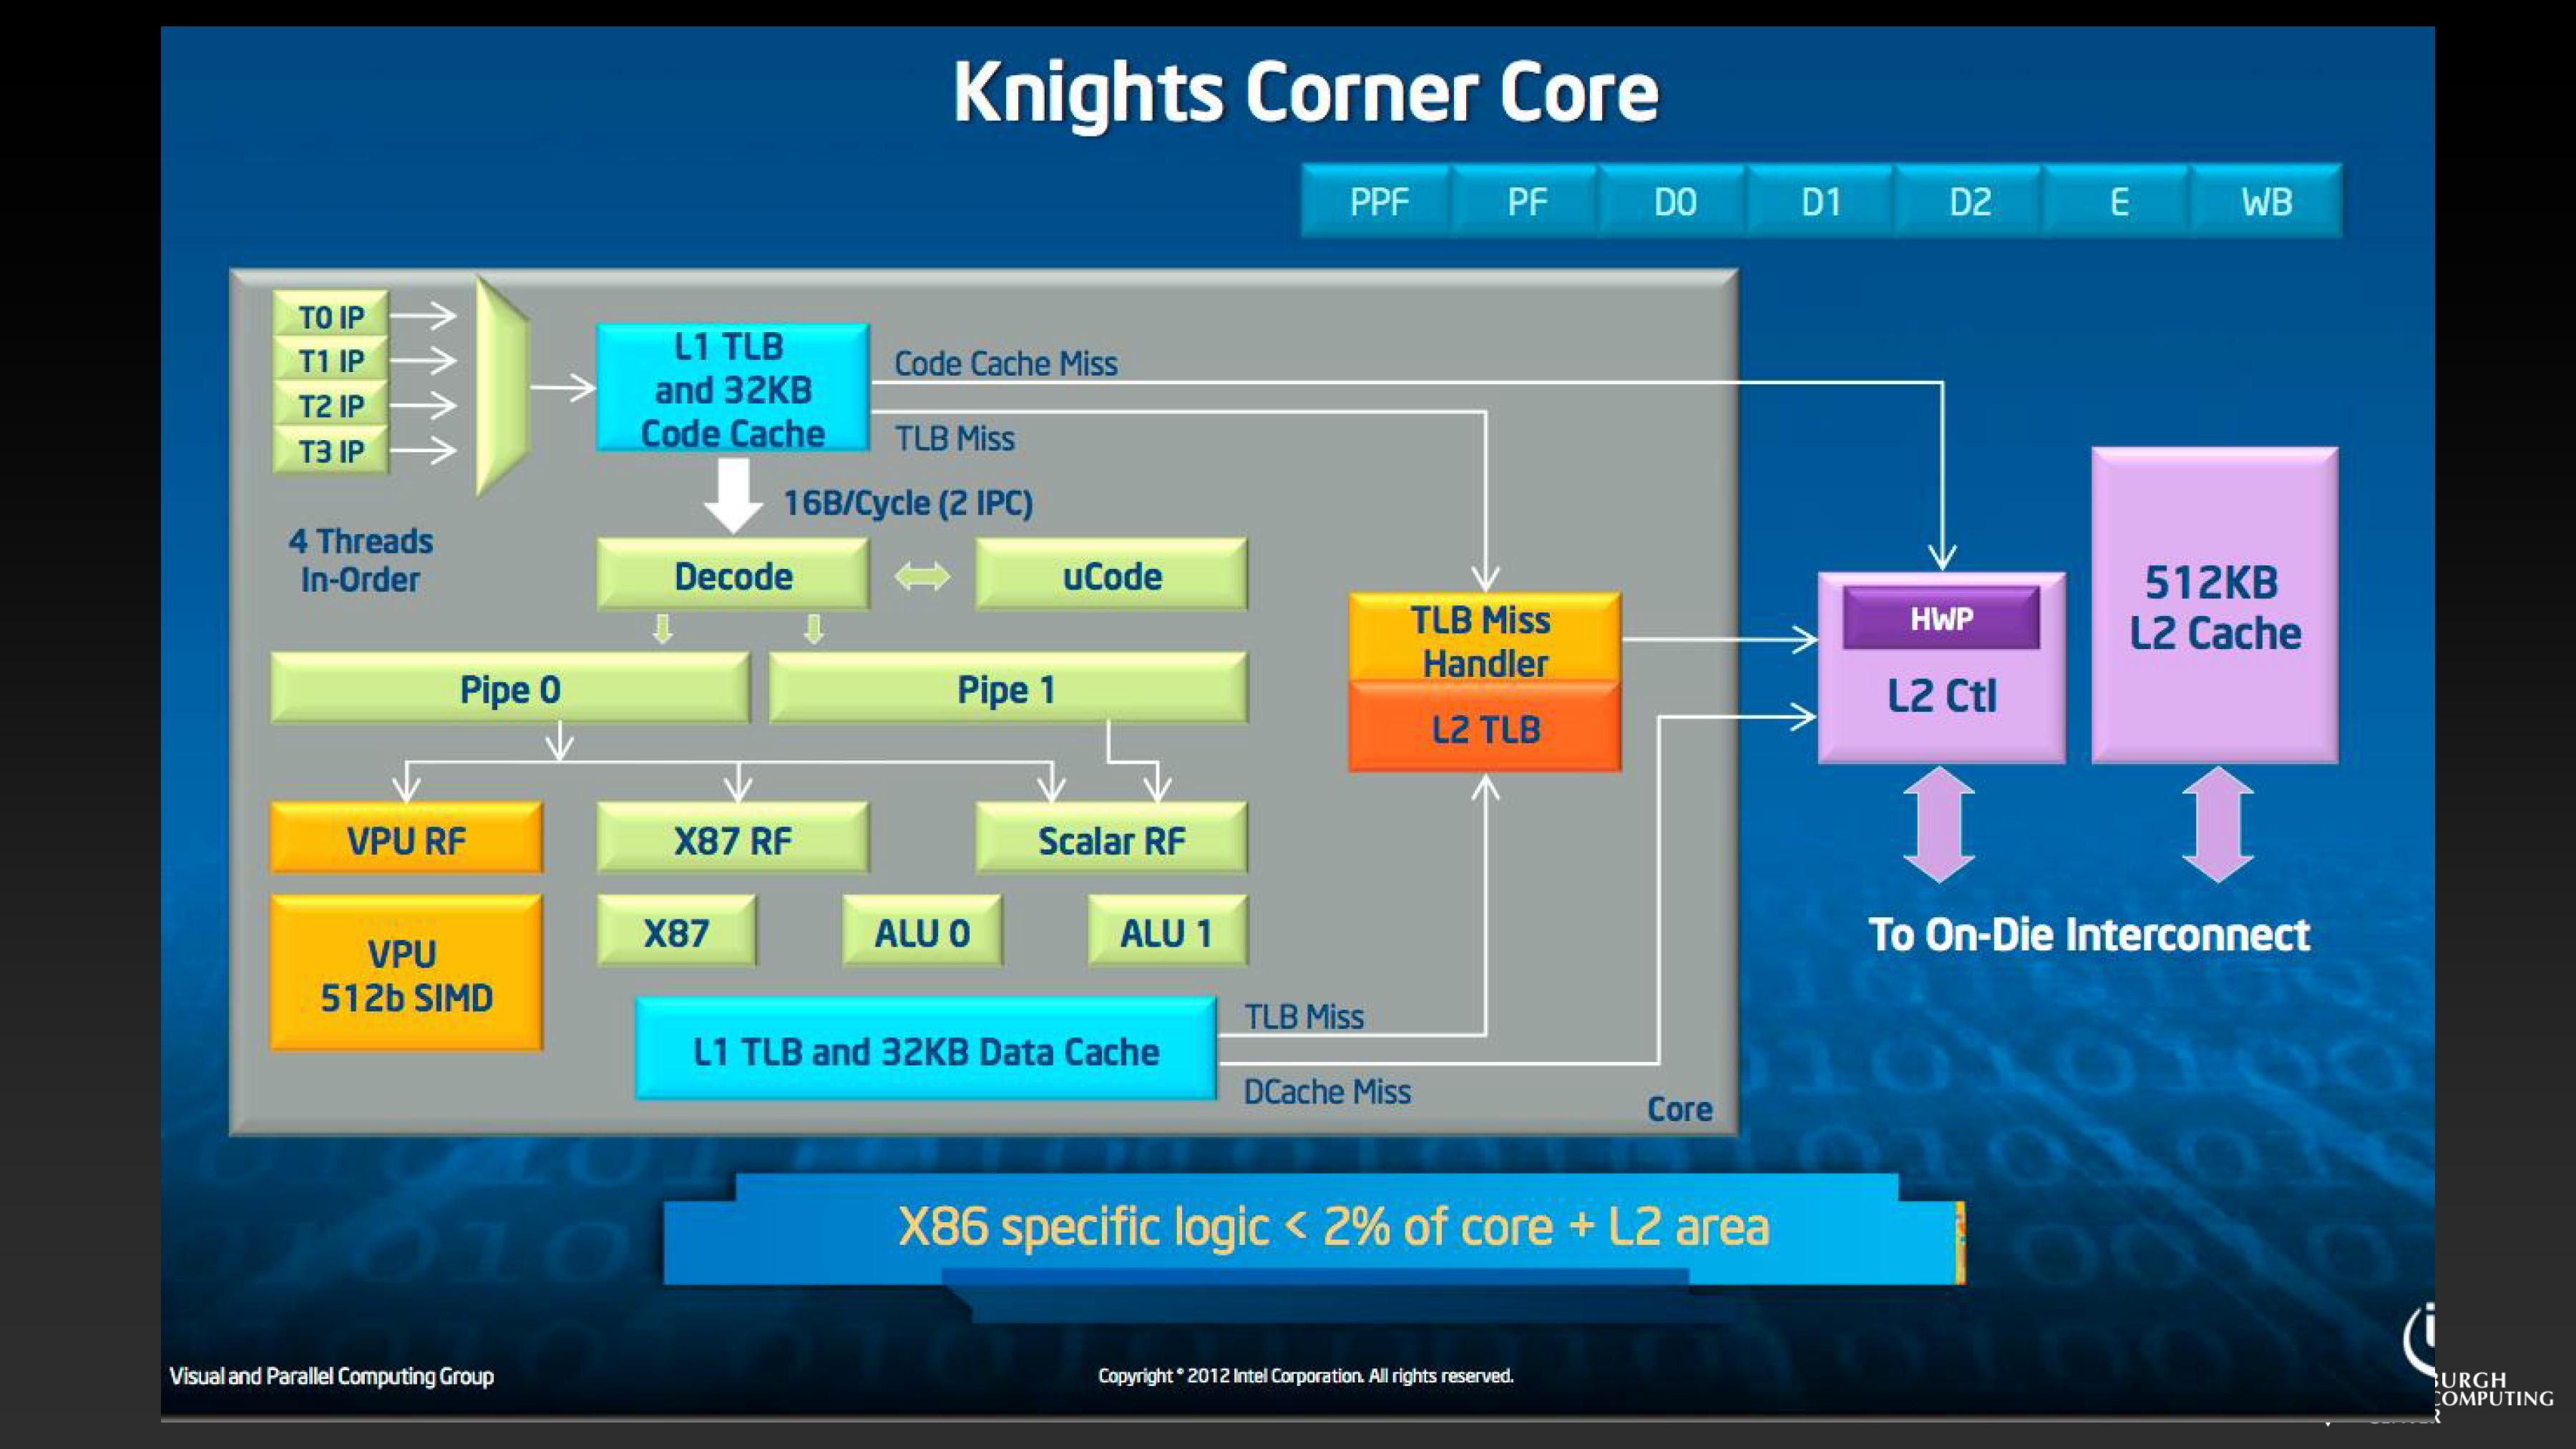 Kinghts Corner Core